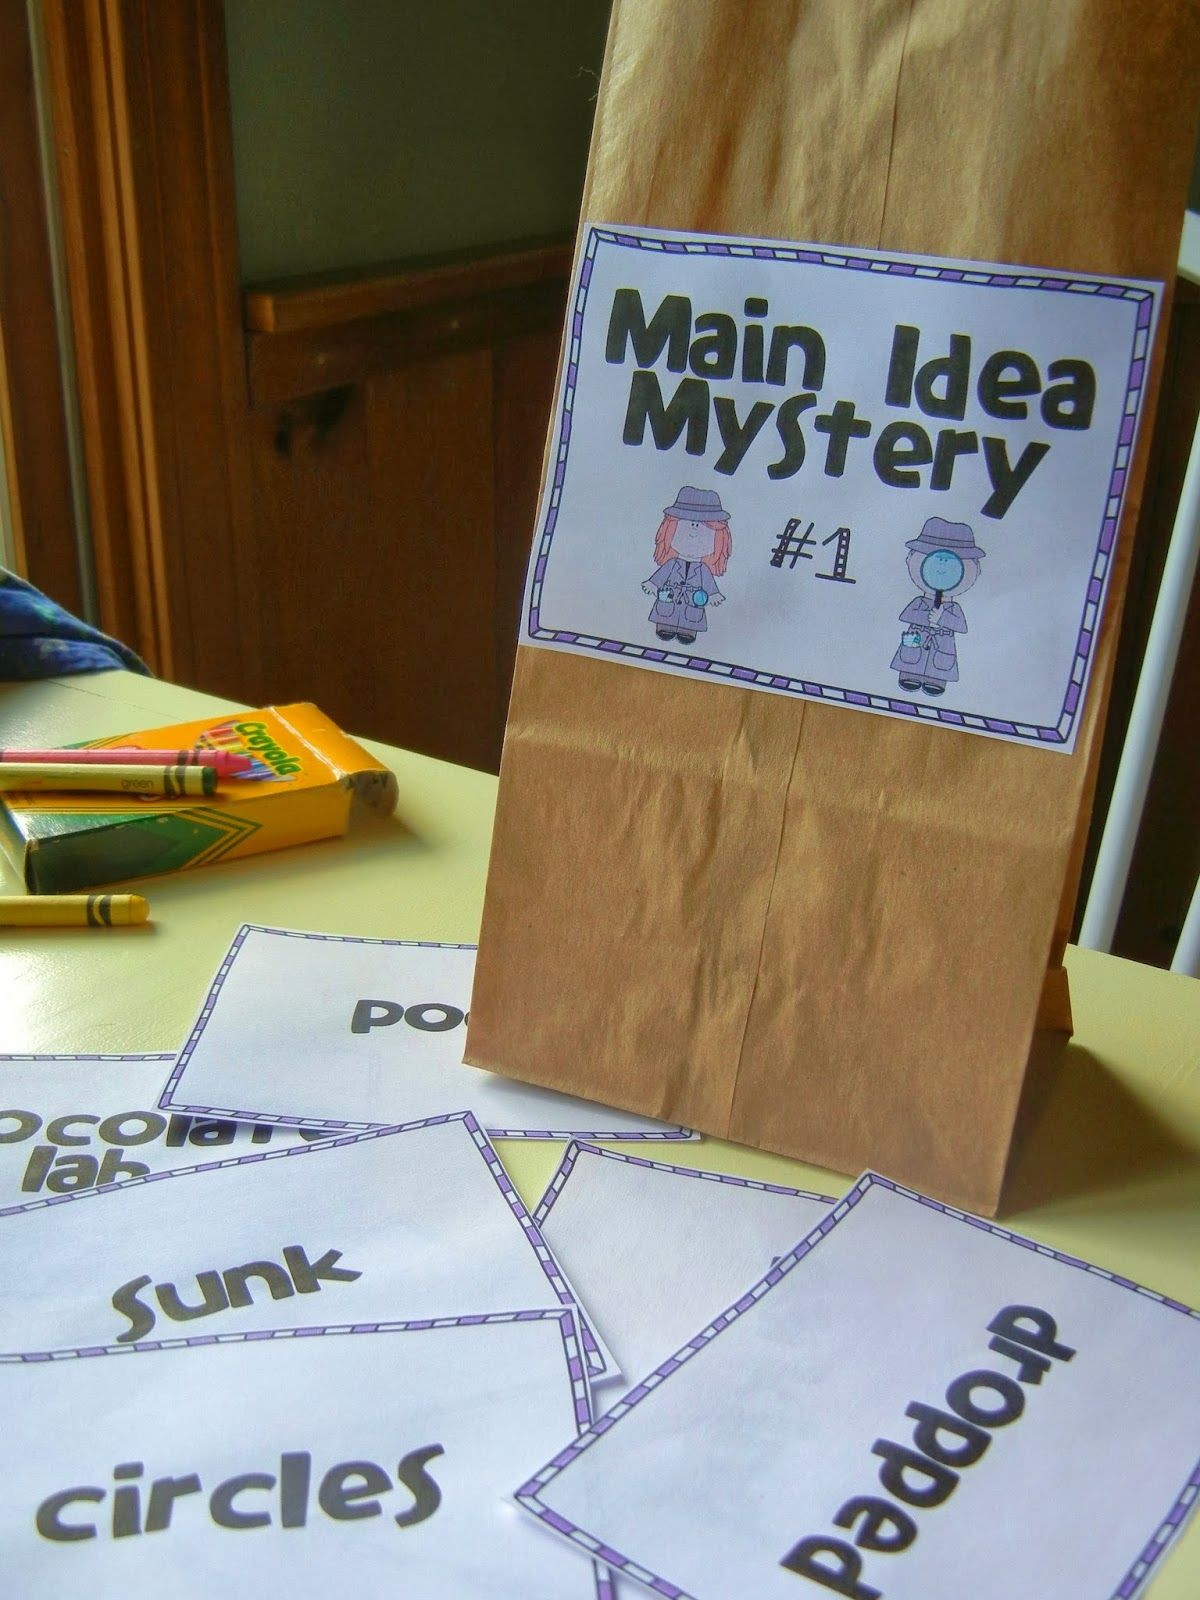 the puzzling main idea contains directions and materials needed for